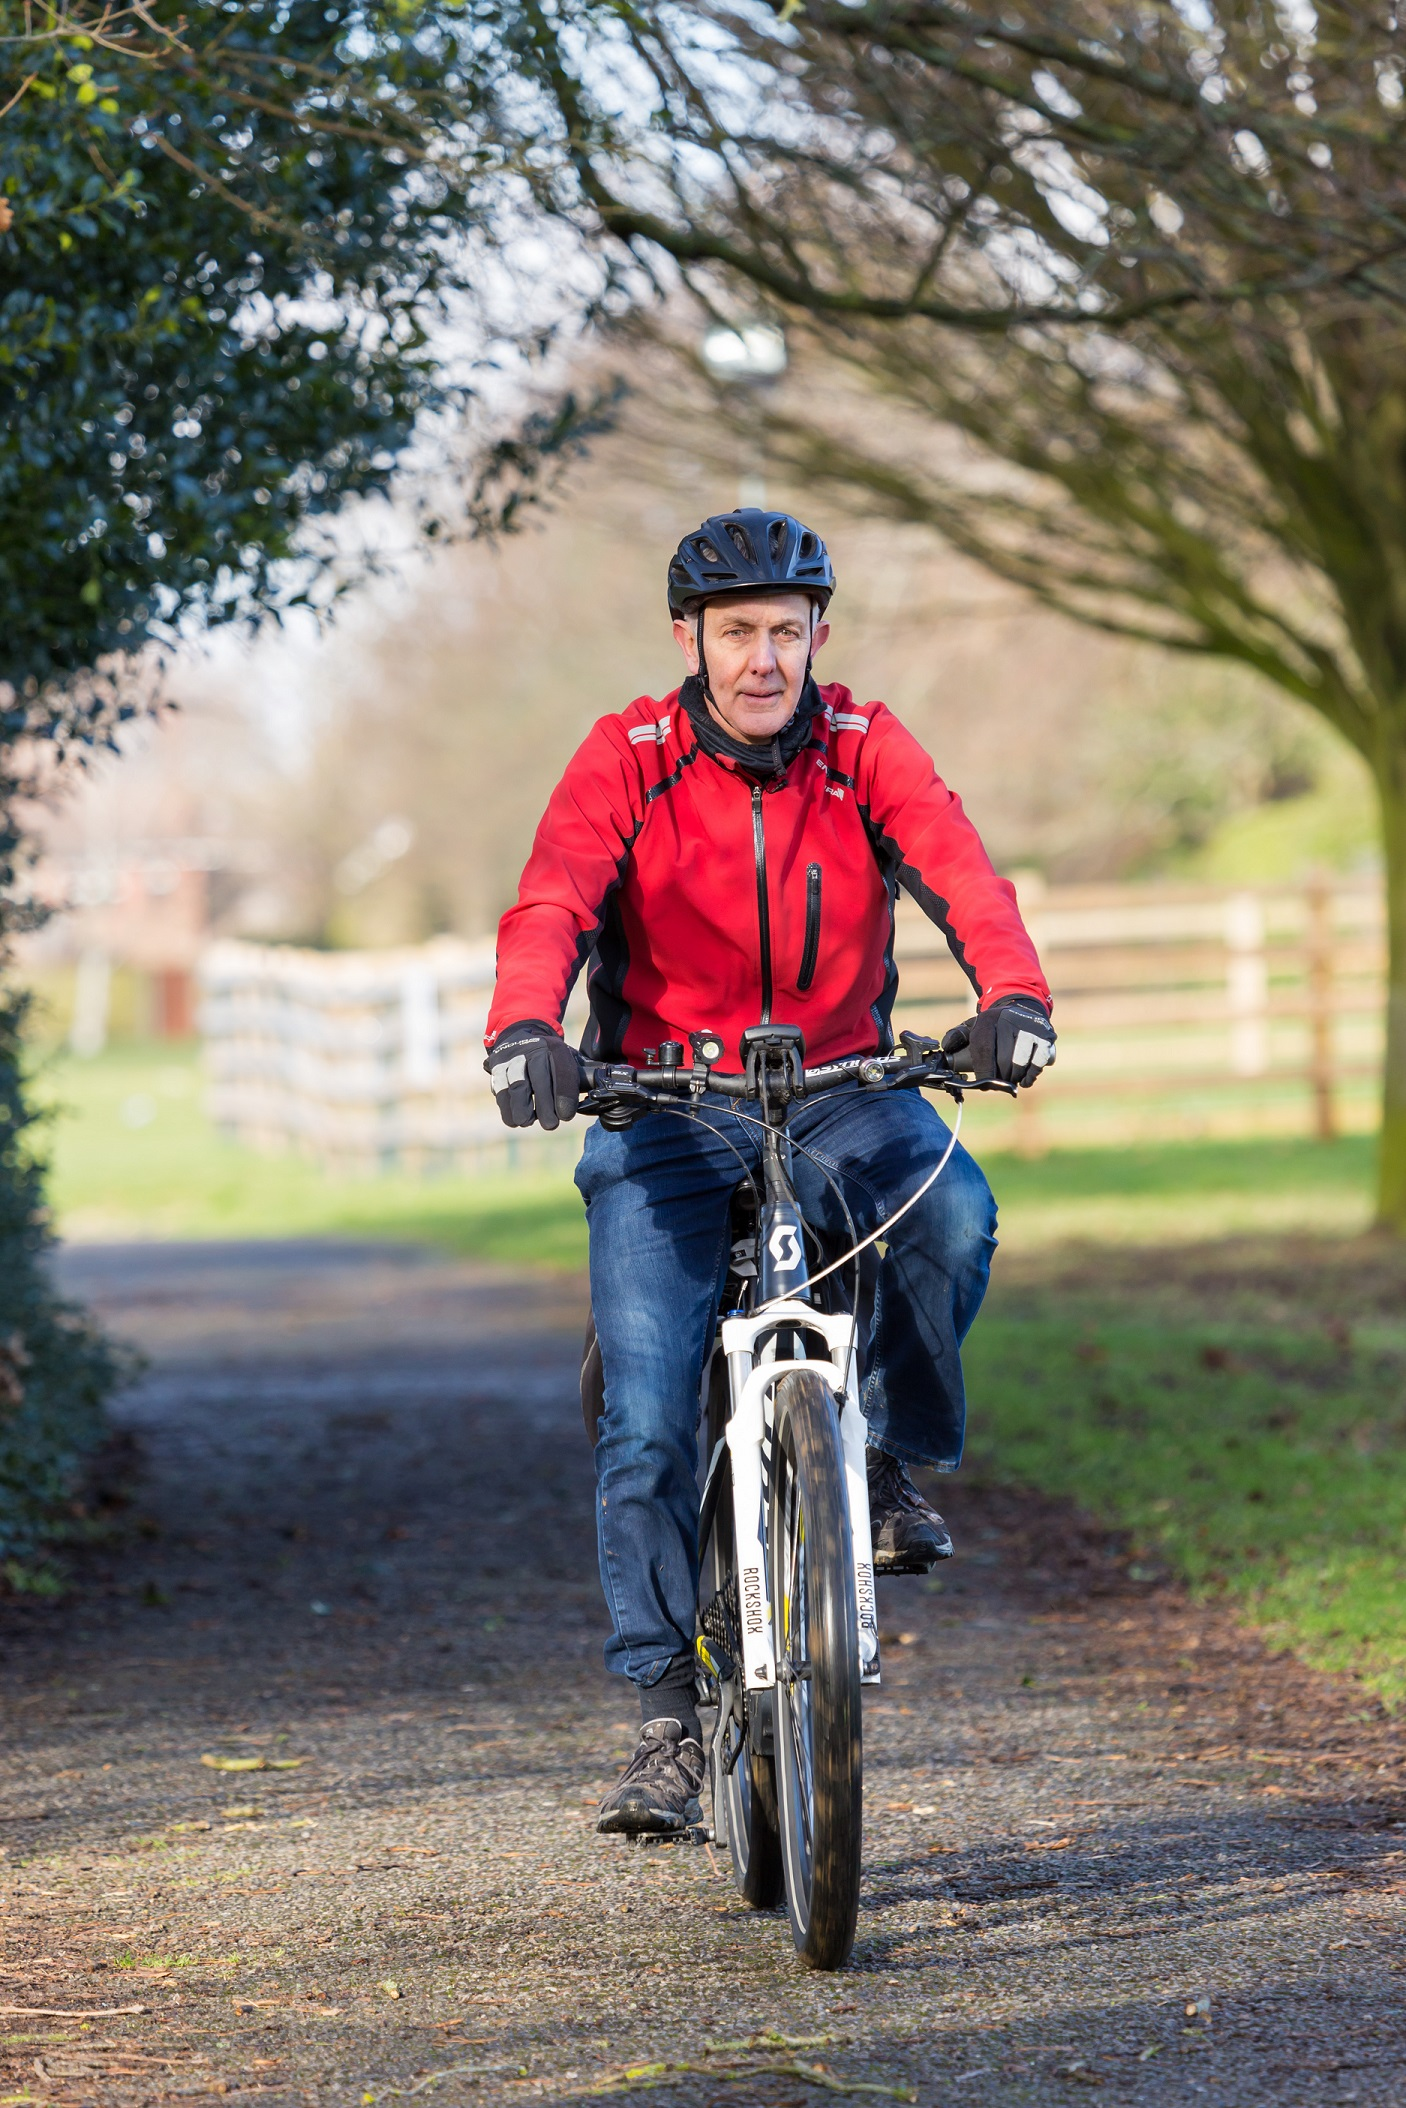 Paul, an e-bike rider in London, riding his e-bike in the park